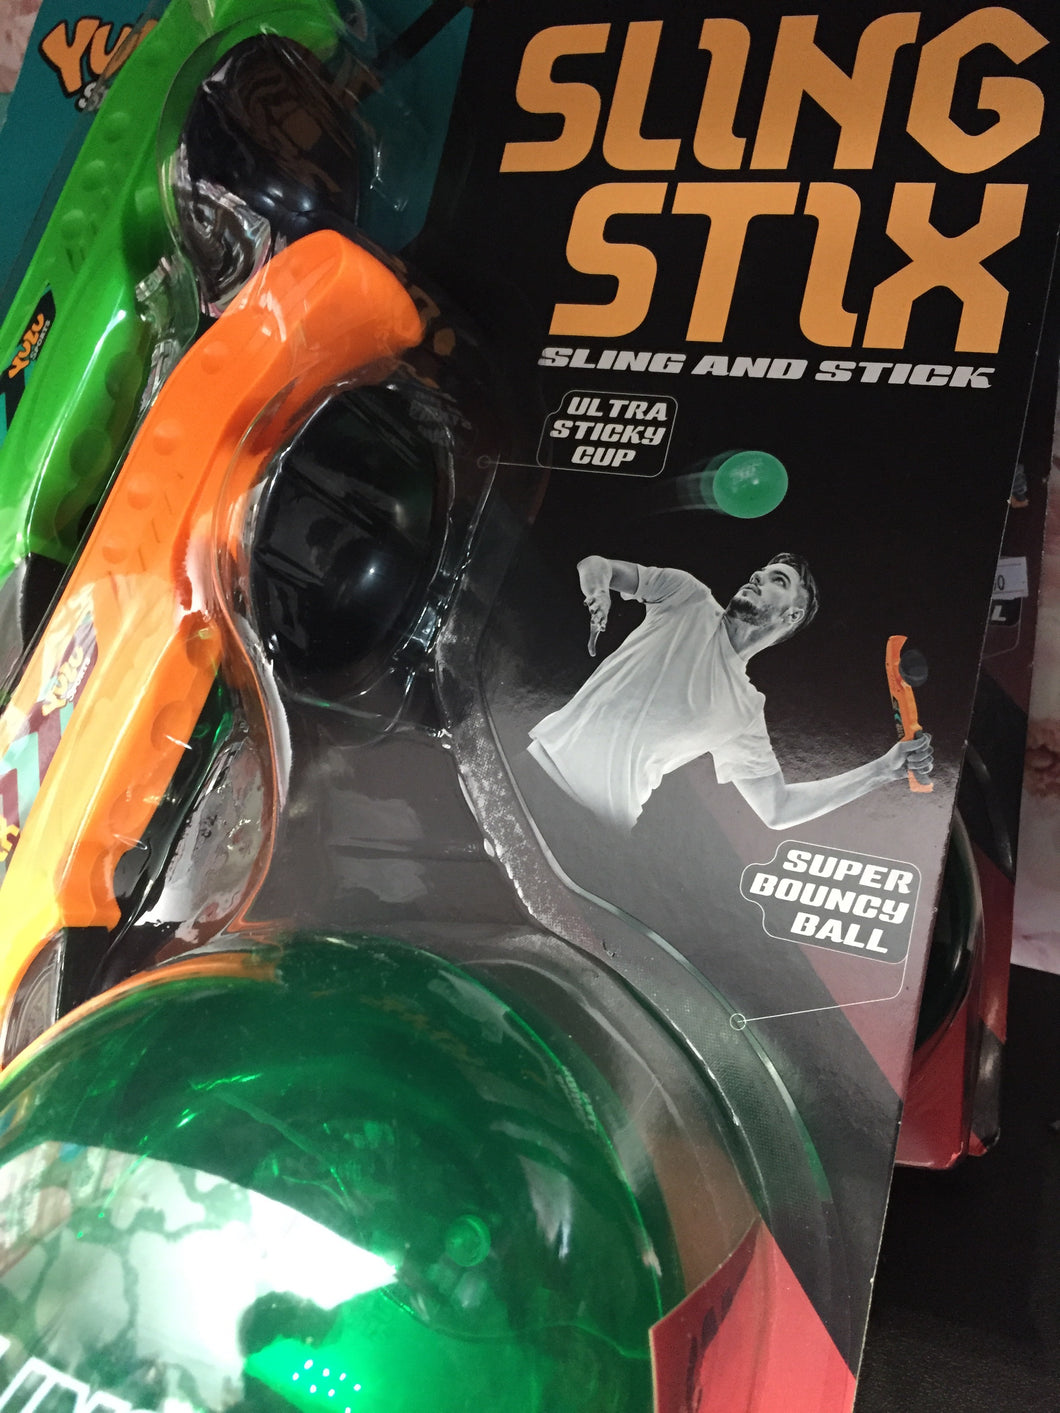 Sling stix - First Class Learning Bradford